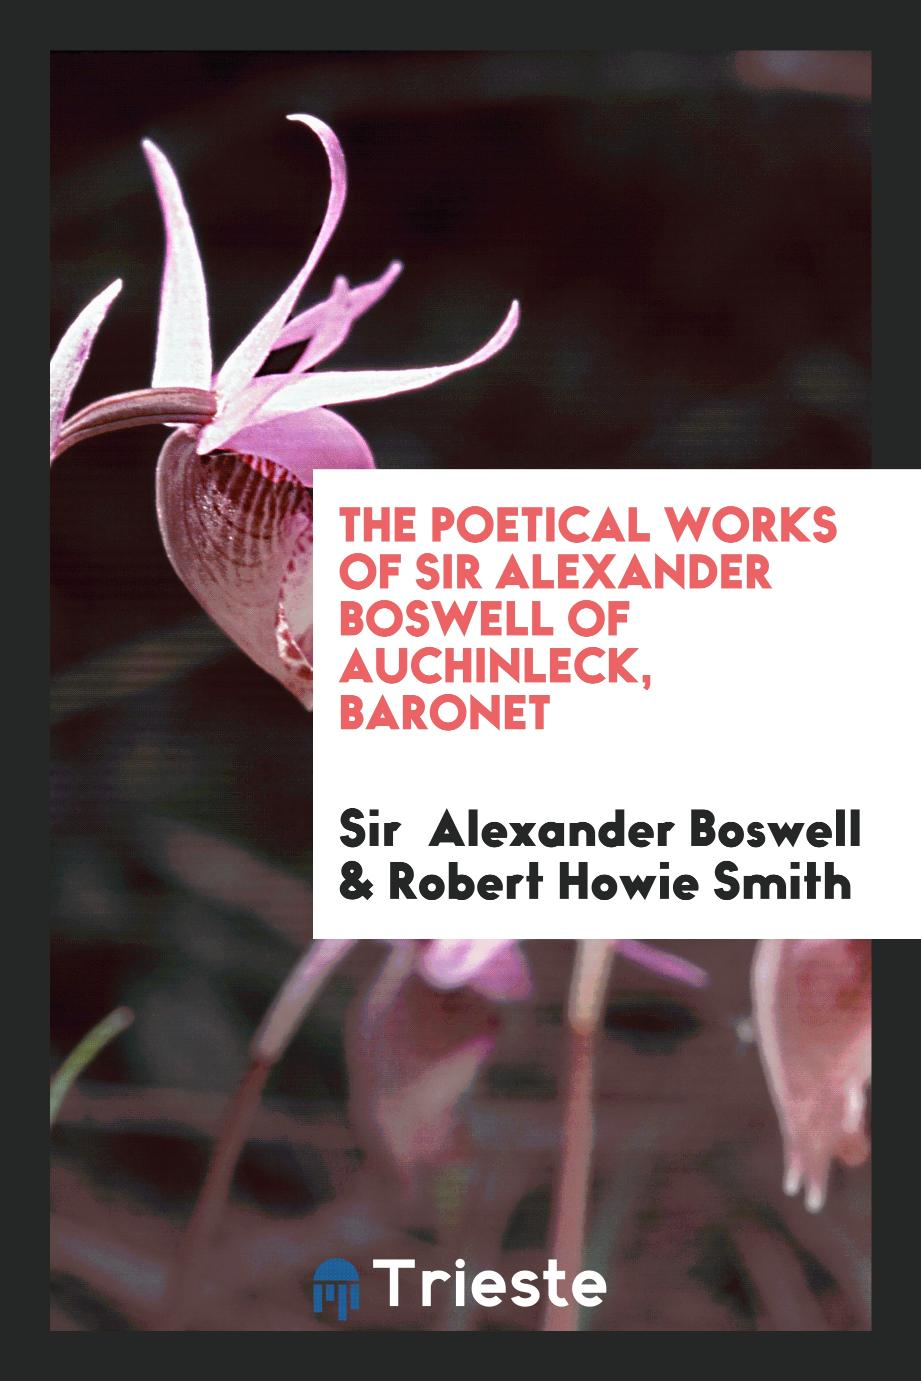 The Poetical works of sir Alexander Boswell of auchinleck, baronet